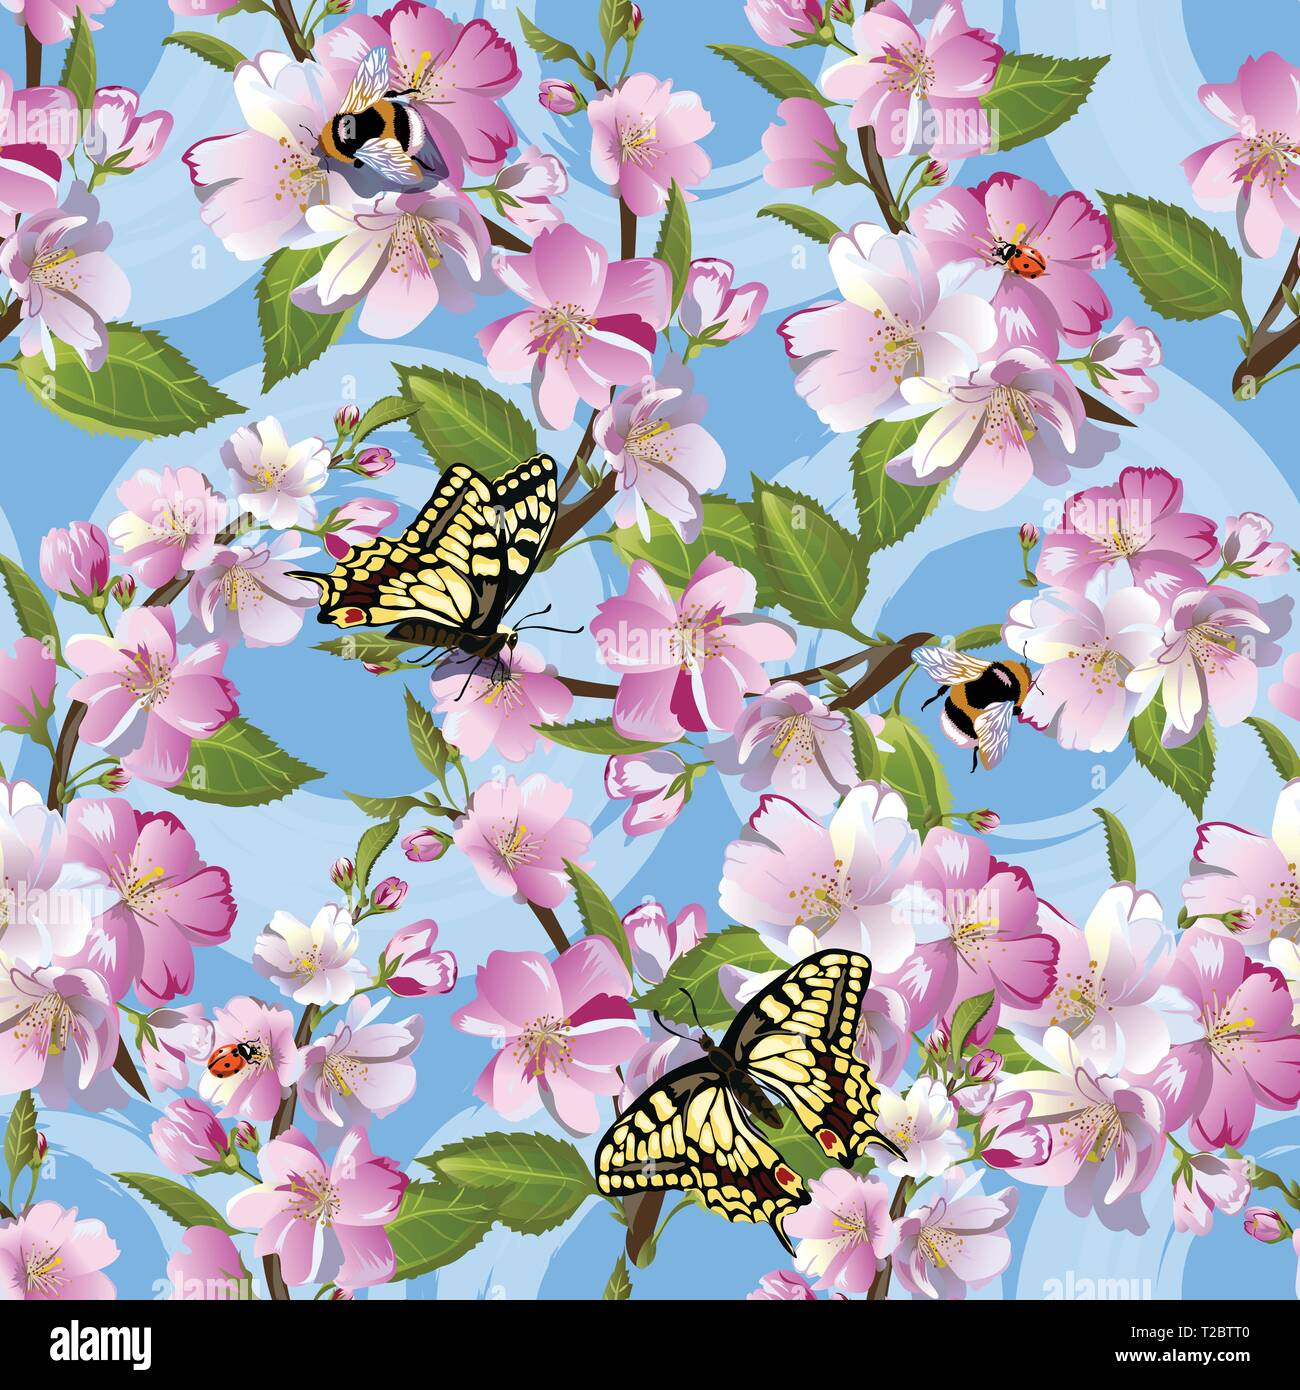 This pattern will give the feeling of the spring sun, carelessness and will look great on women s clothing made of lightweight fabrics such as chiffon - Stock Image